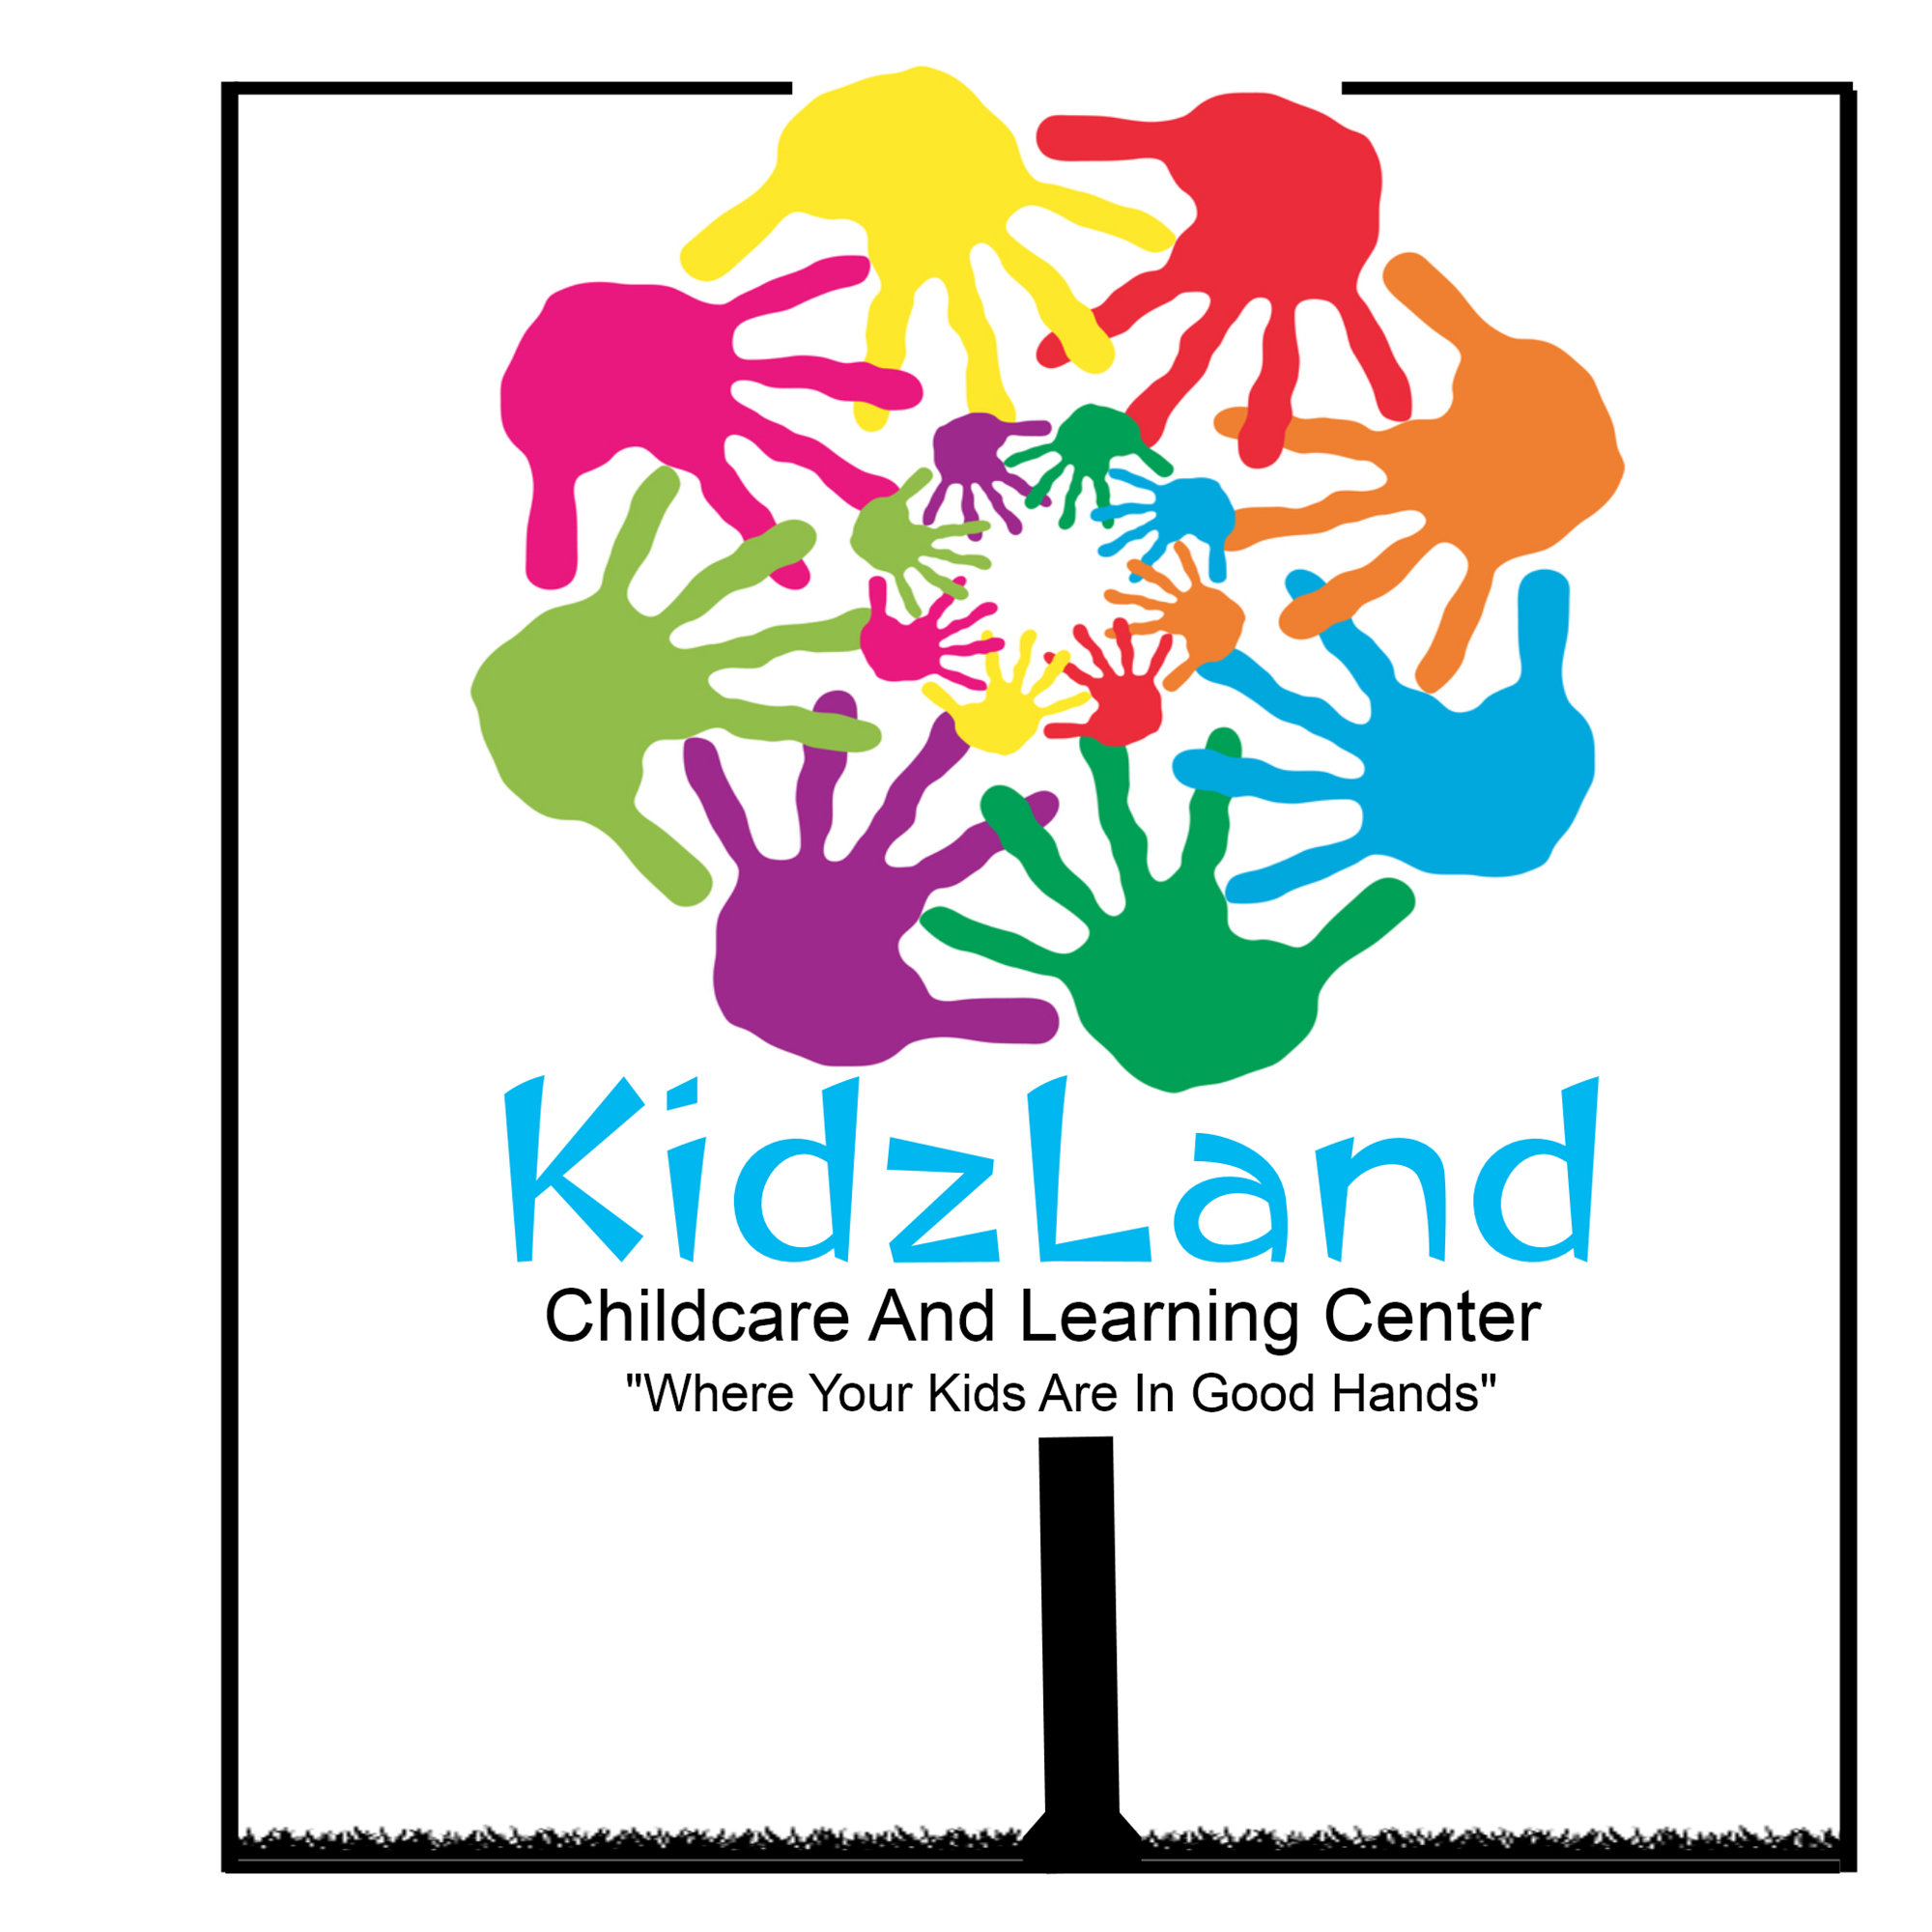 Kidzland Childcare Center